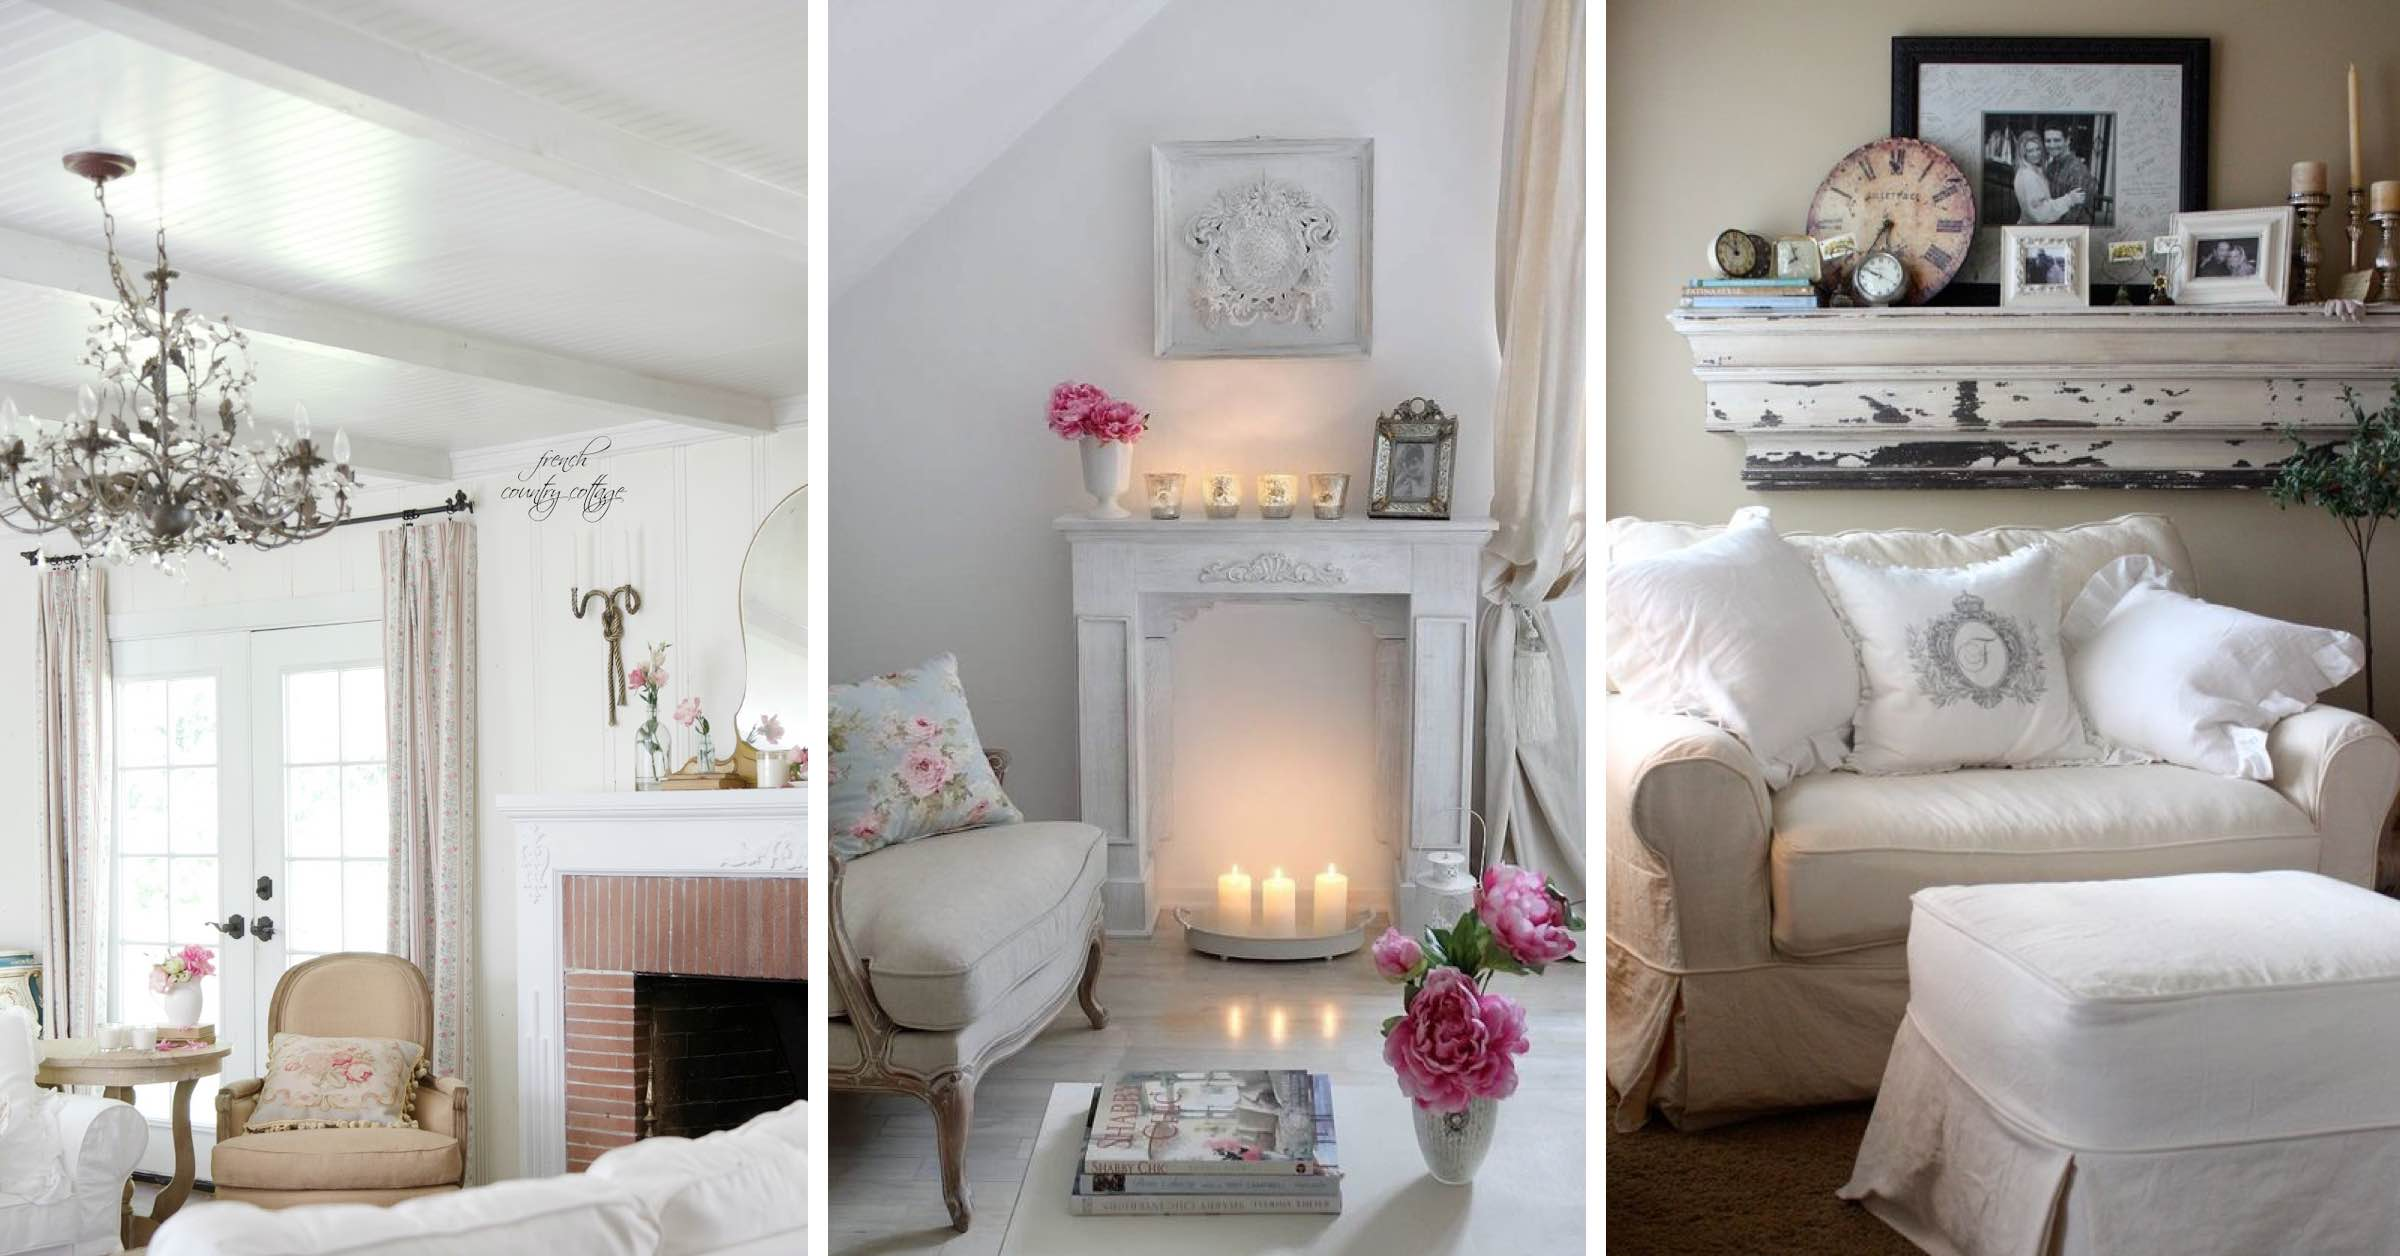 19 Shabby Chic Living Room Ideas That Will Totally Melt Your